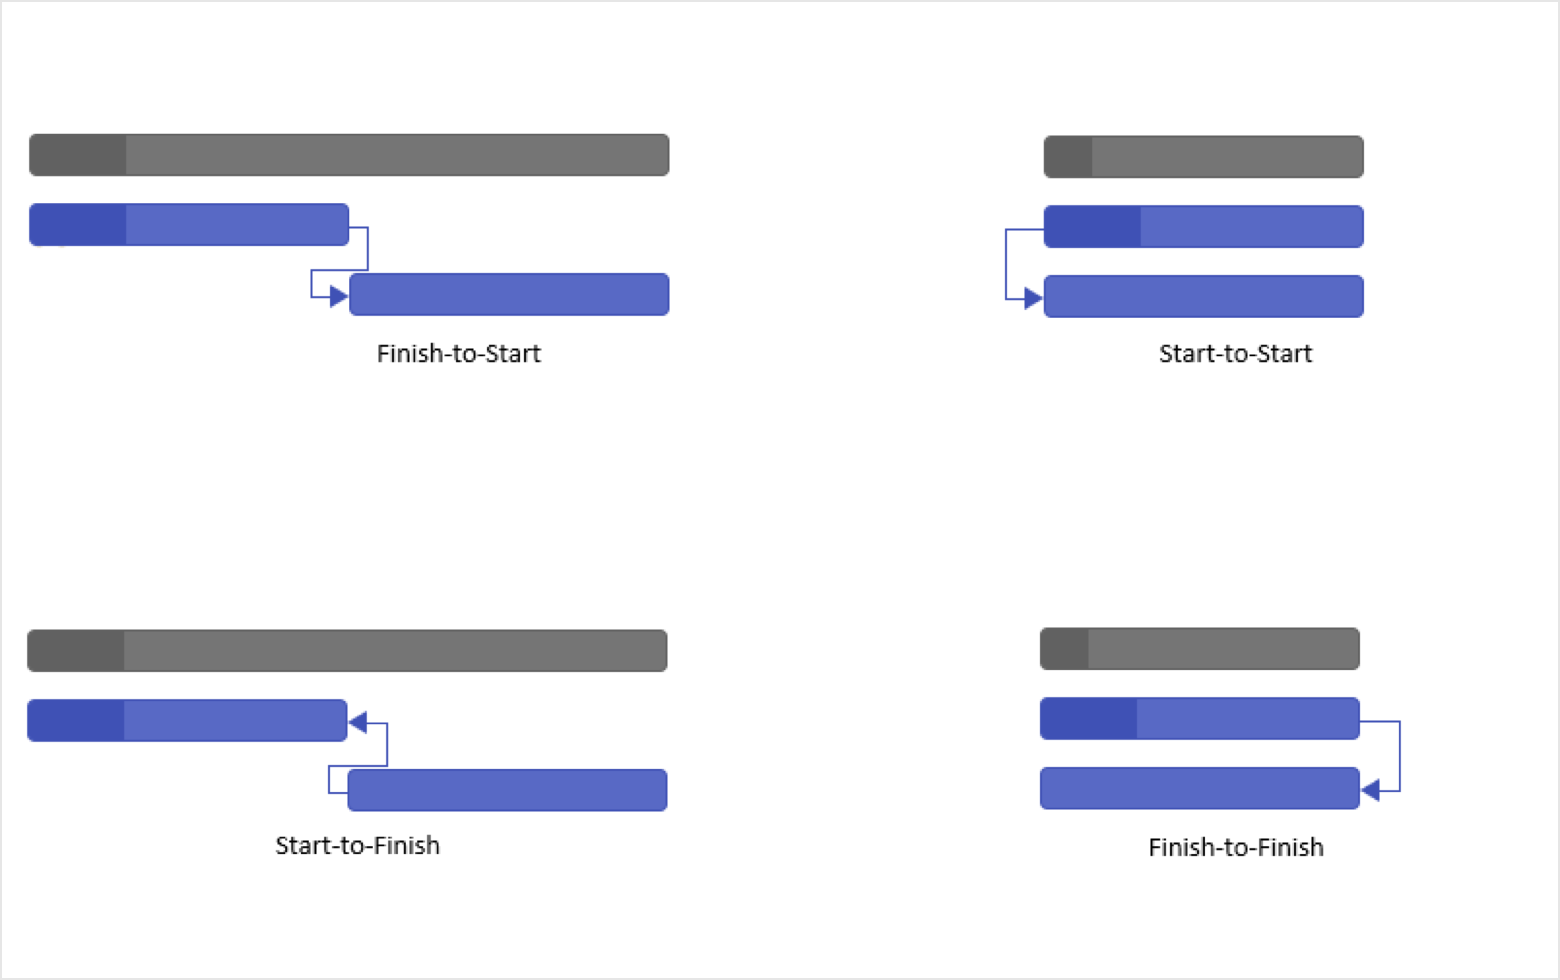 Types of relationships between tasks in Angular Gantt Chart.